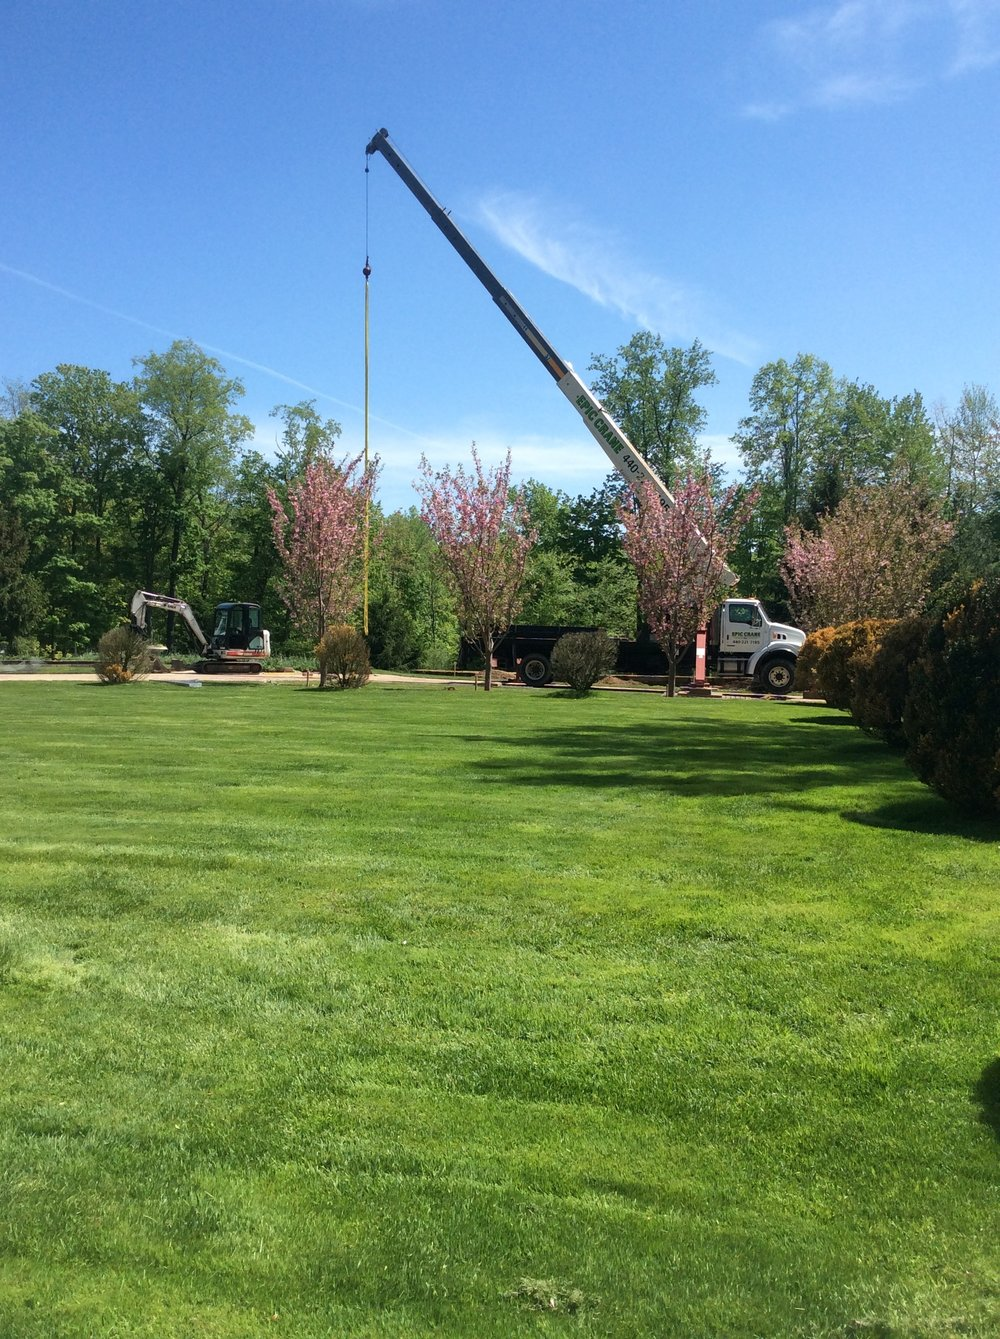 Landscaping companies with awn fertilizer and lawn care services in Hudson, OH